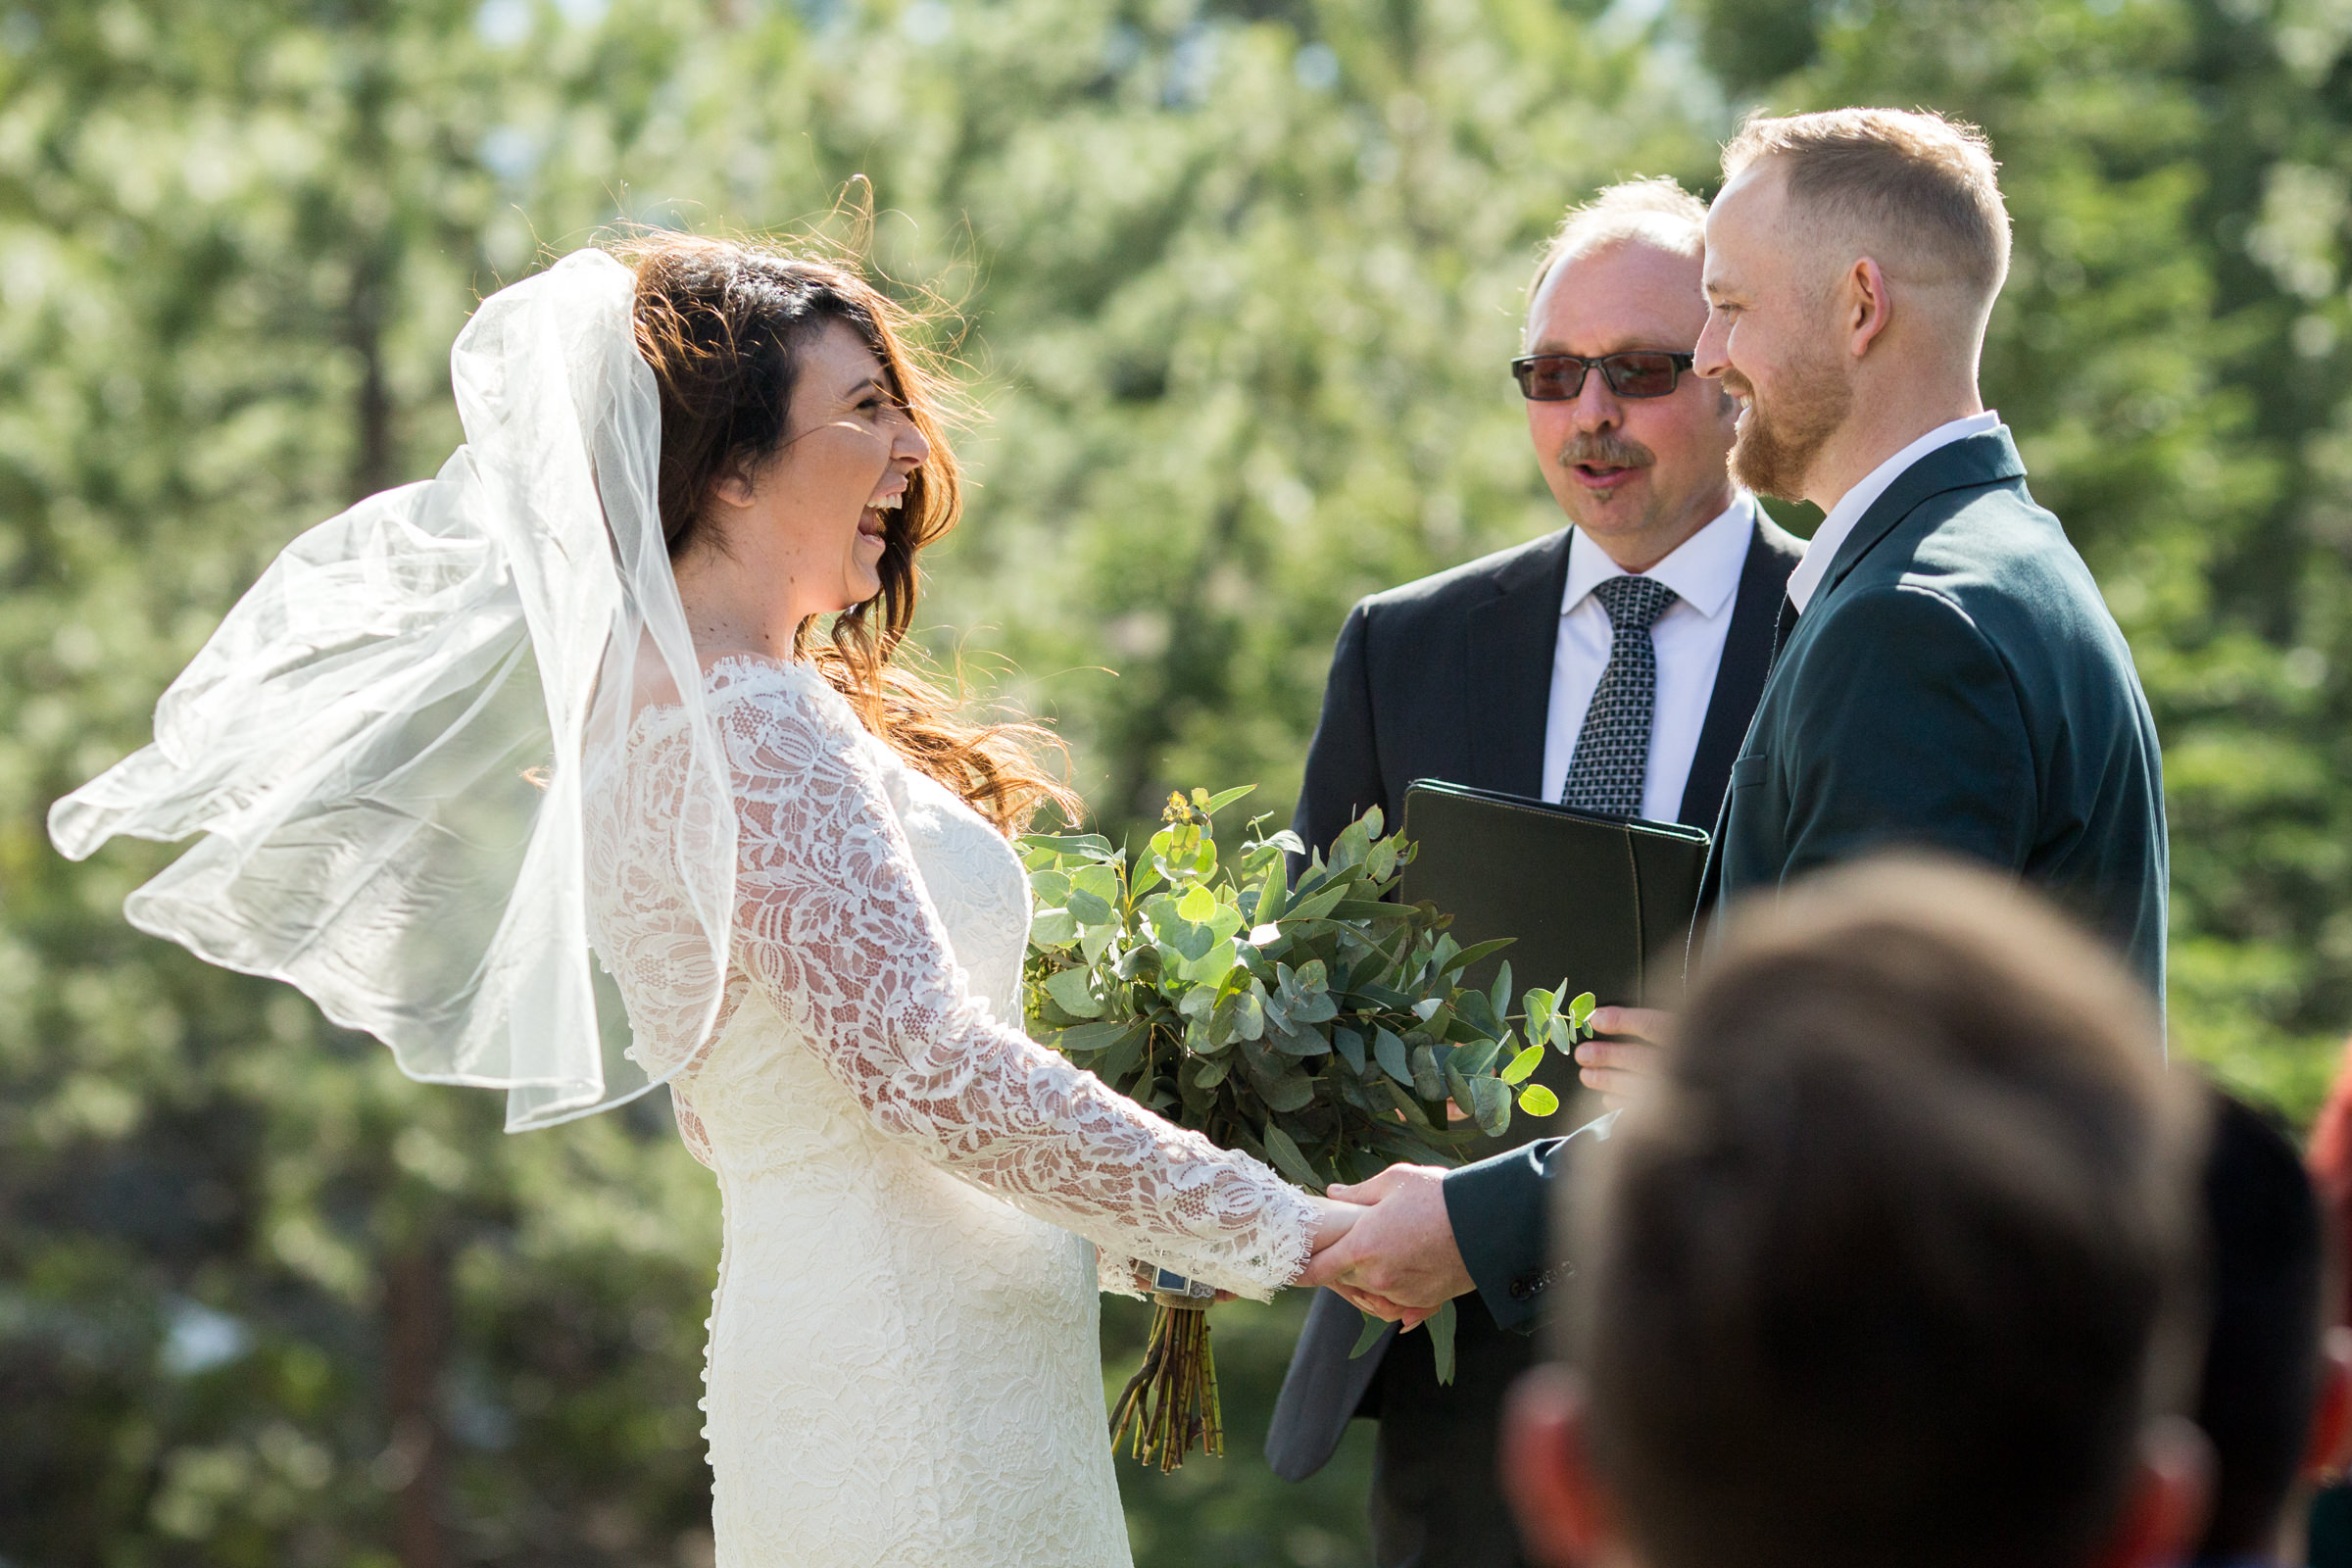 lake-tahoe-wedding-photographer-photography-best-top-north-city-kevin-sawyer-reno-truckee-bestof-incline-village-ceremony-charthouse-chart-house-south-lake-tahoe-downtown-love-laughter-bride-groom